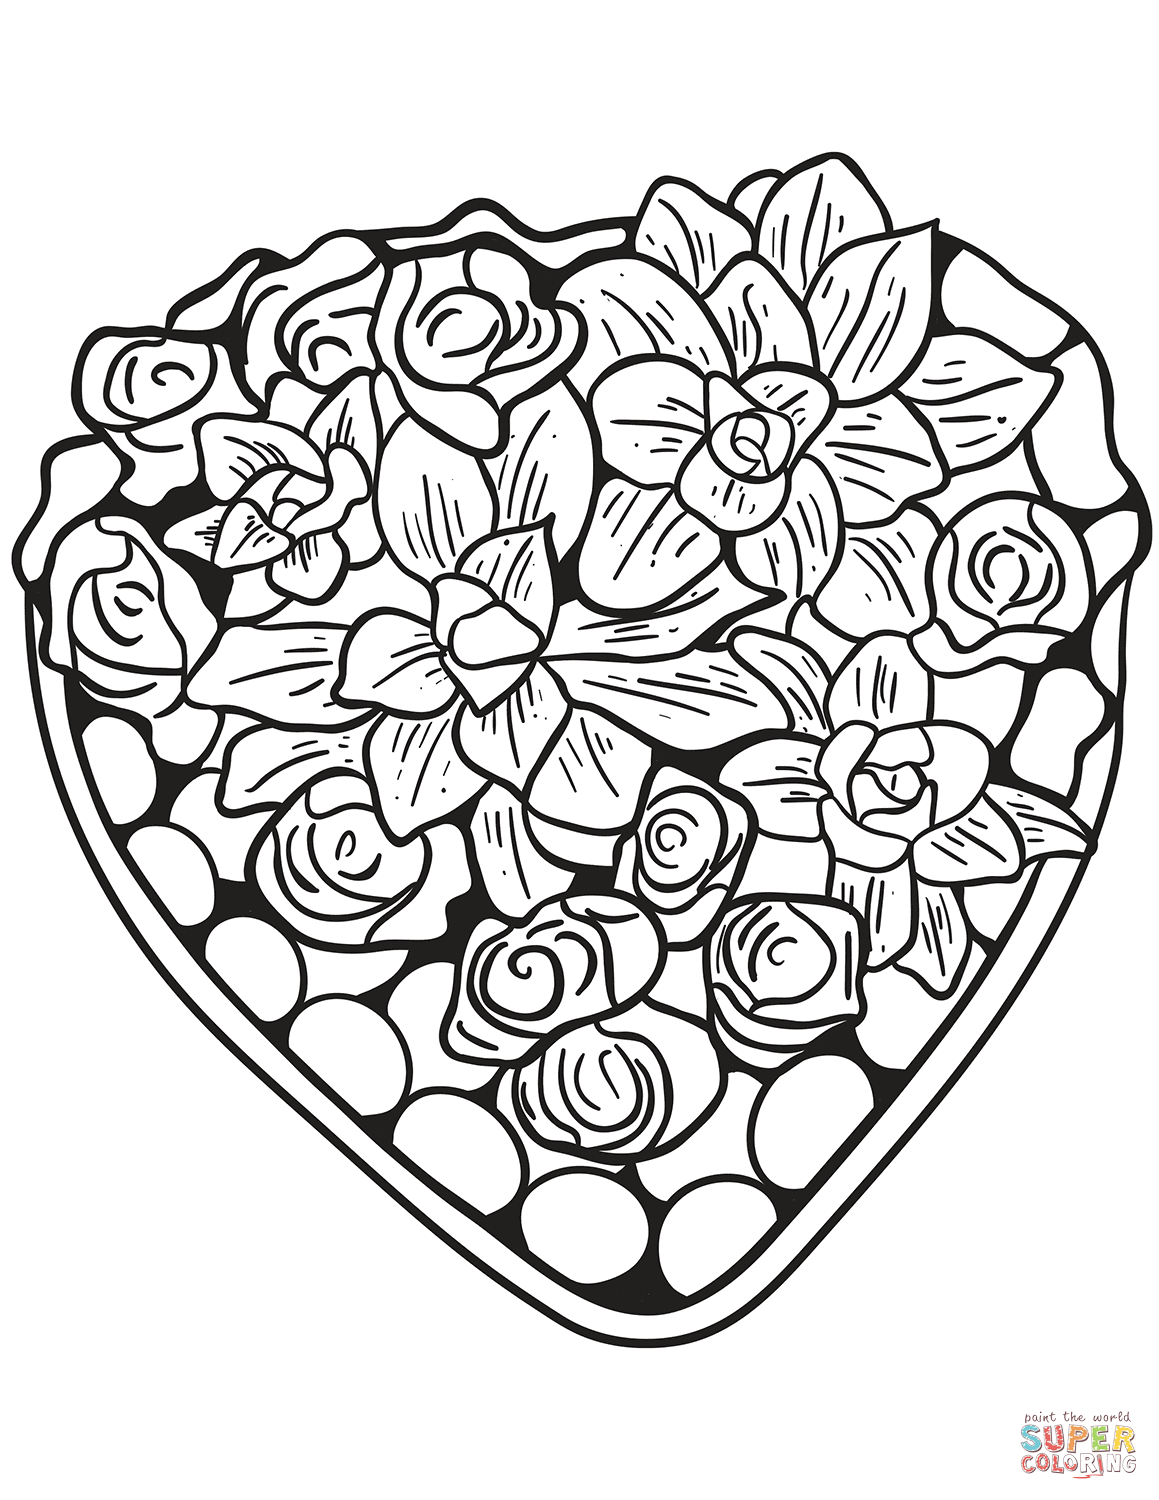 Heart Made Of Flowers Coloring Page Free Printable Coloring Pages